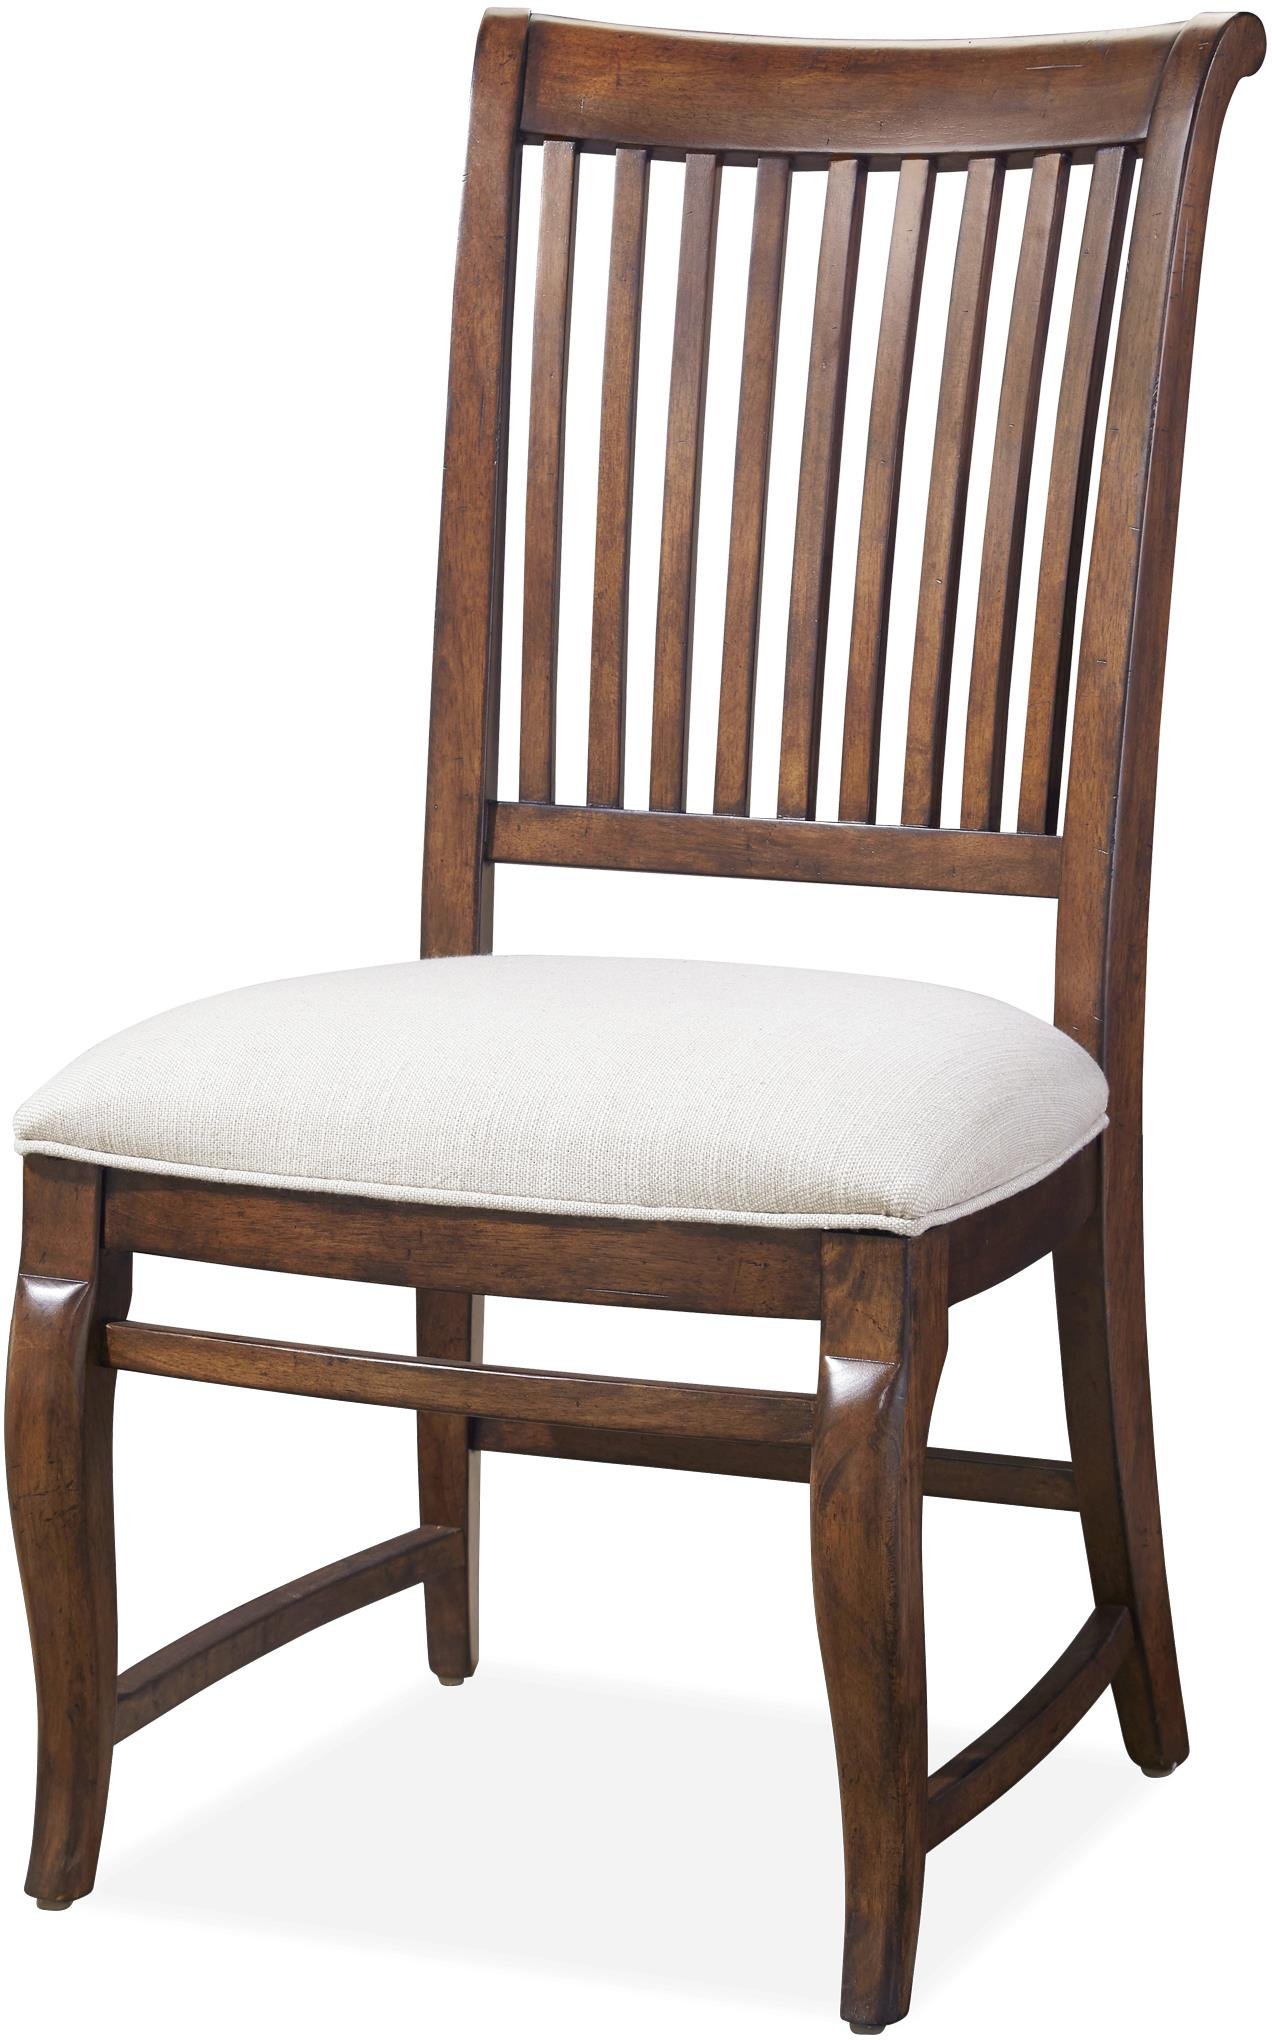 Paula Deen by Universal Dogwood Dogwood Side Chair - Item Number: 596634-RTA